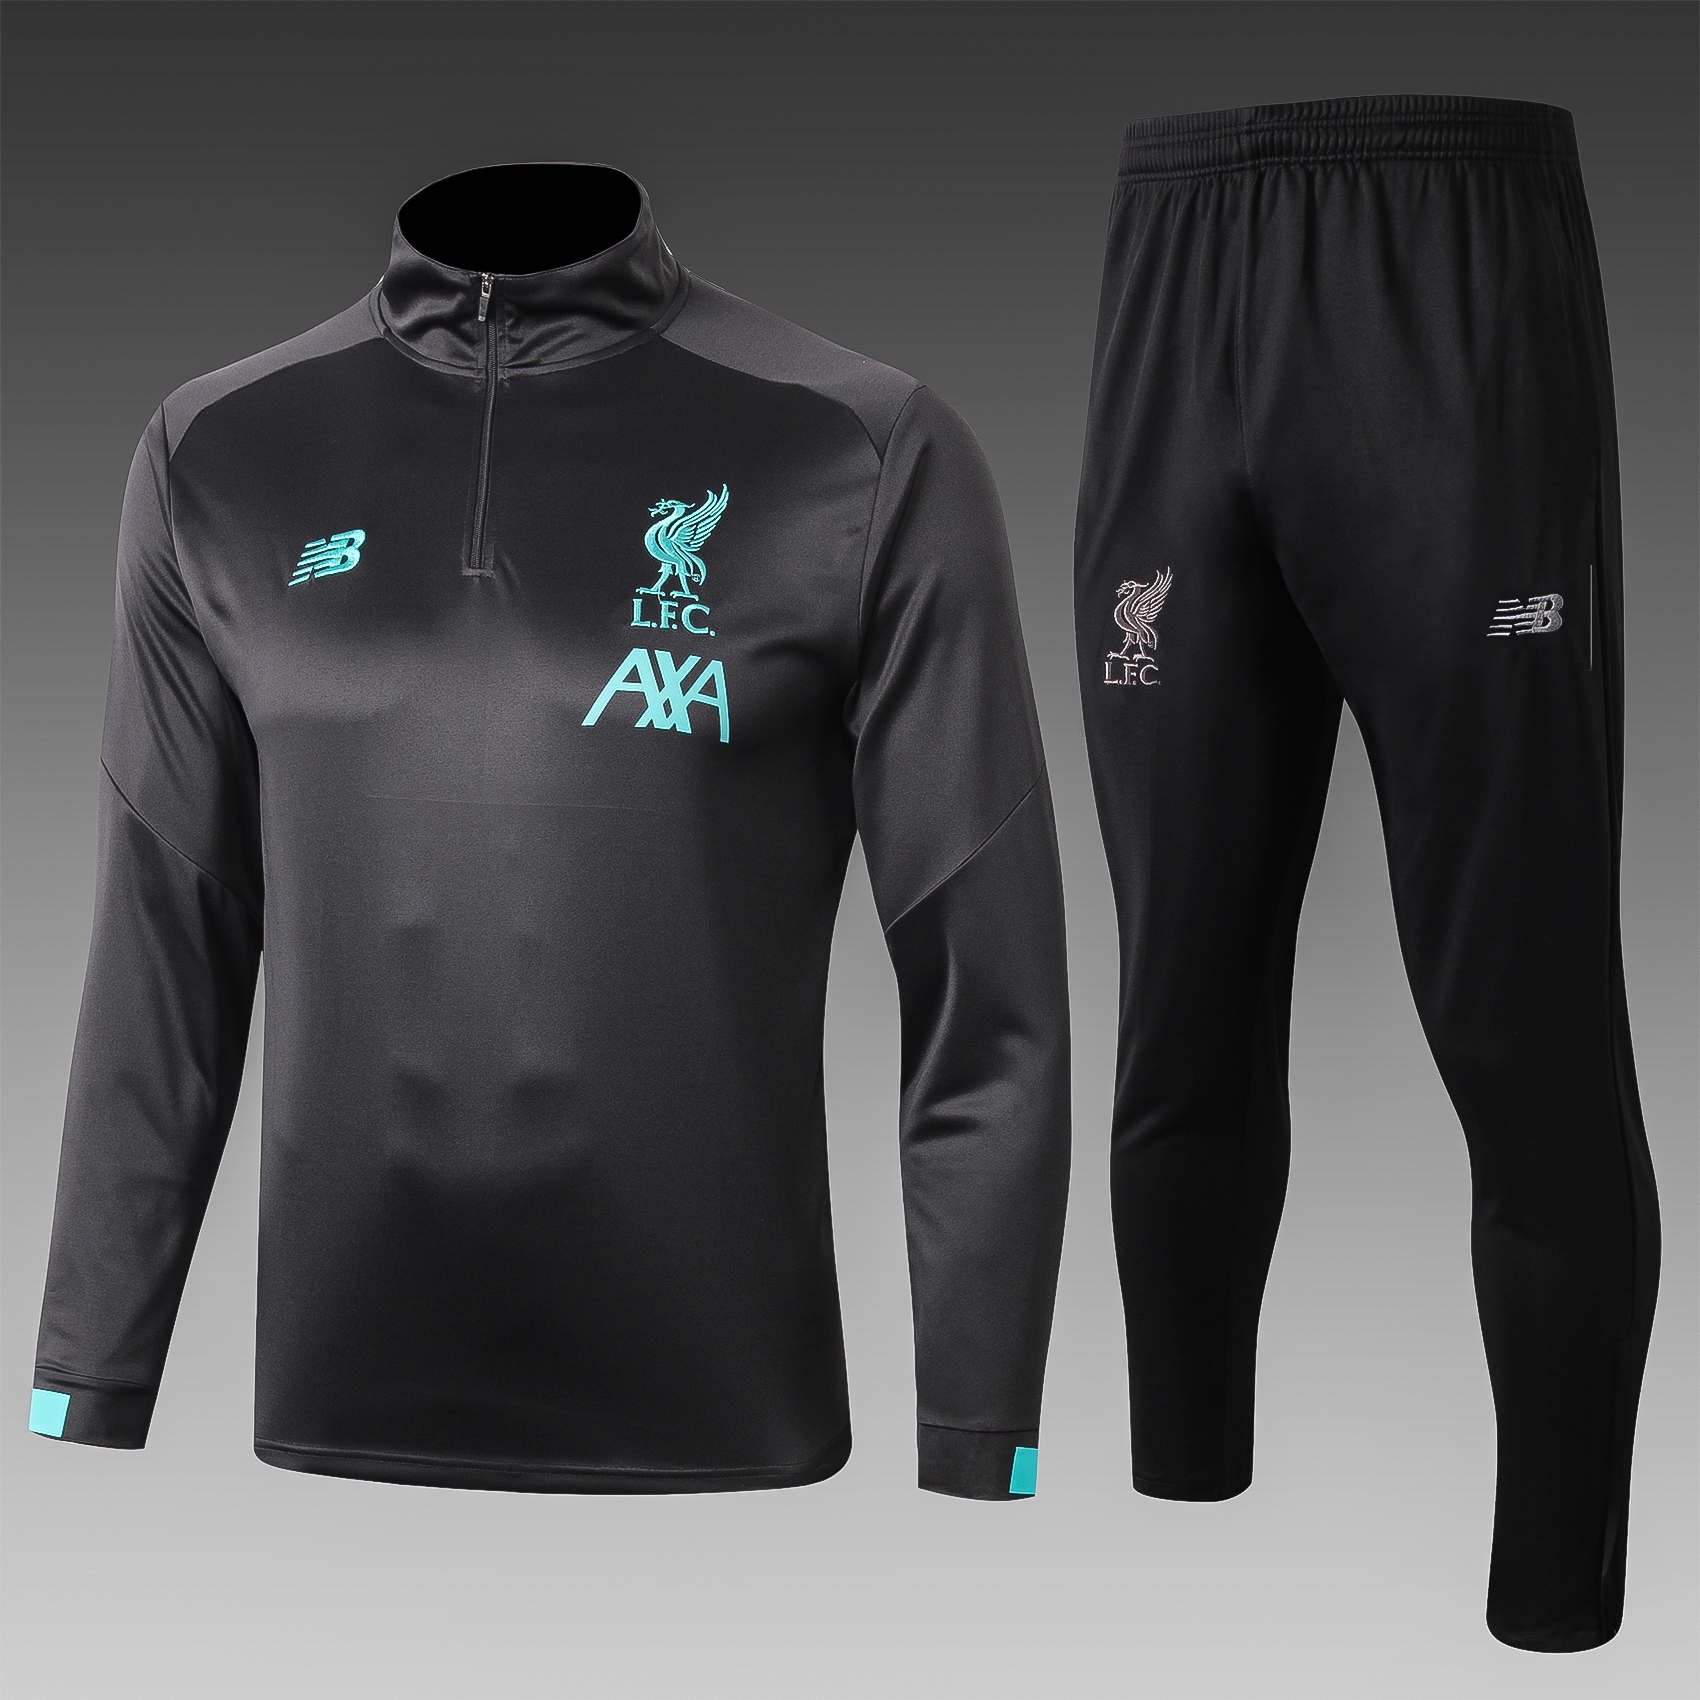 Training Liverpool FC saison 2019-2020